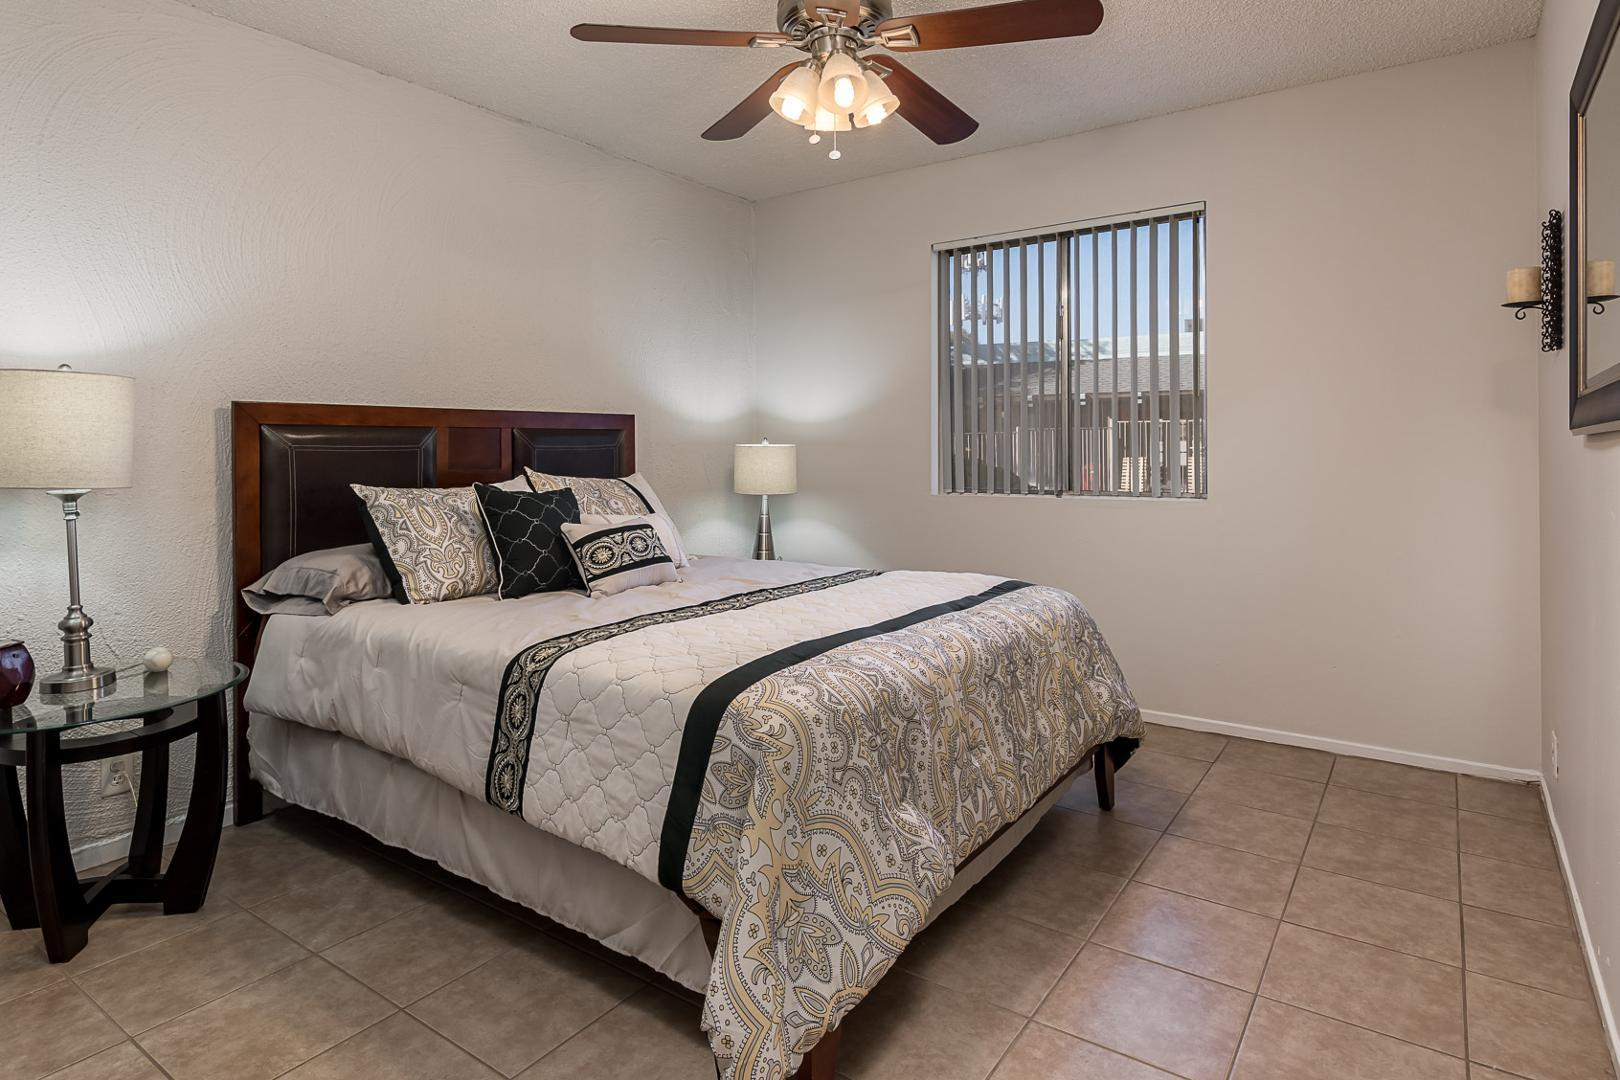 1502 W Glendale Ave #The Arroyo, Phoenix, AZ - $775 USD/ month